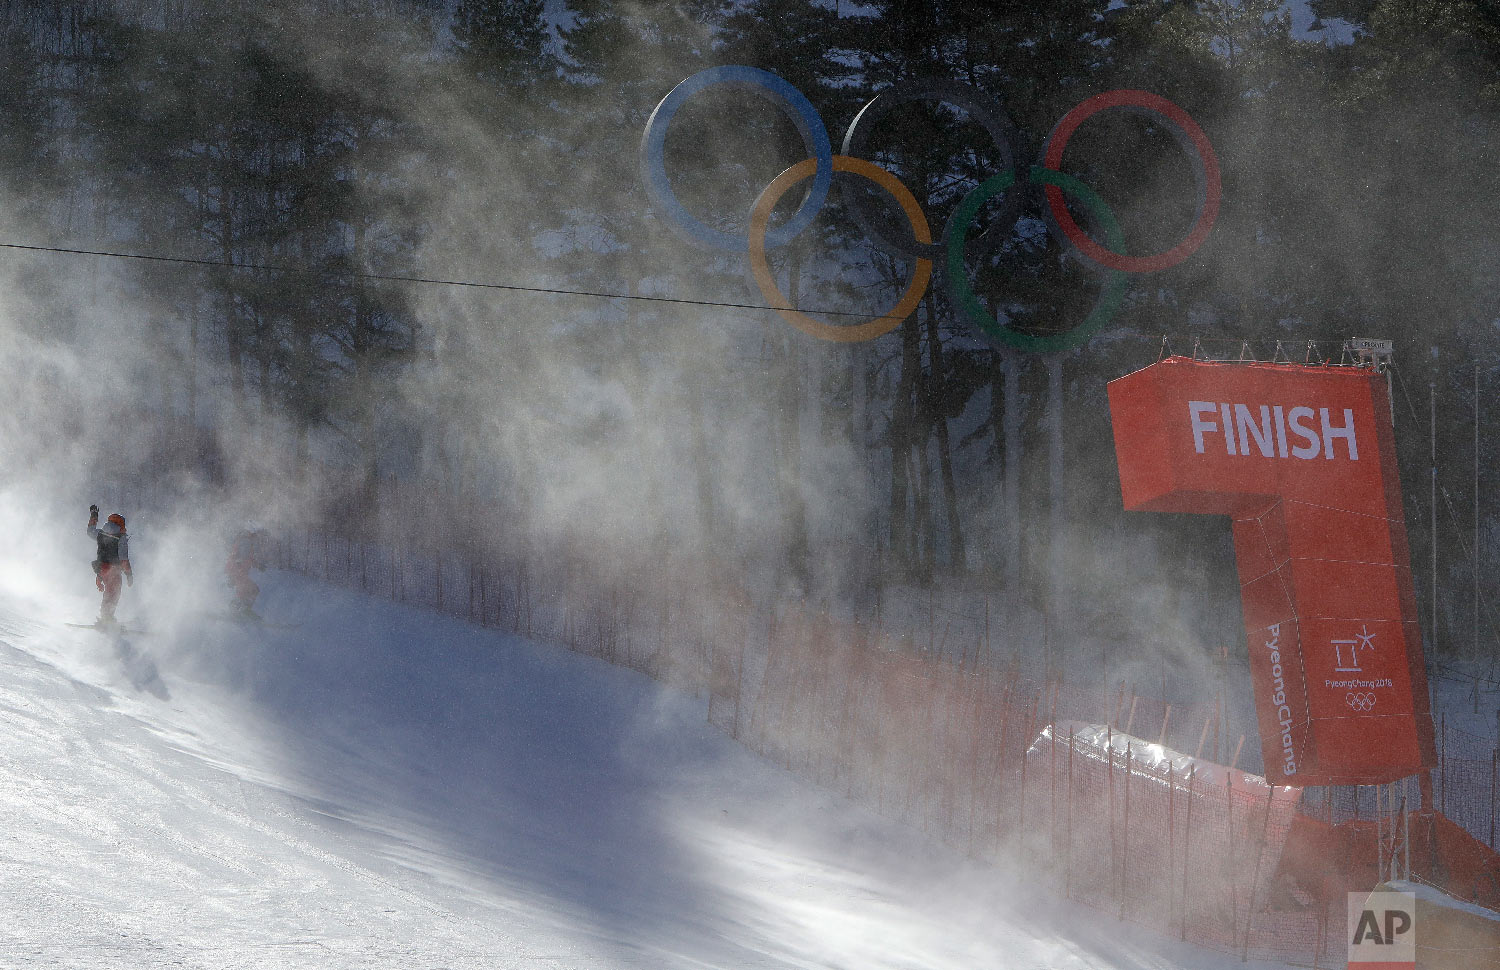 The finish line and Olympic rings shrouded in snow as they carry ski gates after the women's giant slalom was postponed due to high winds at the 2018 Winter Olympics at the Yongpyong Alpine Center, Pyeongchang, South Korea, Monday, Feb. 12, 2018. (AP Photo/Michael Probst)